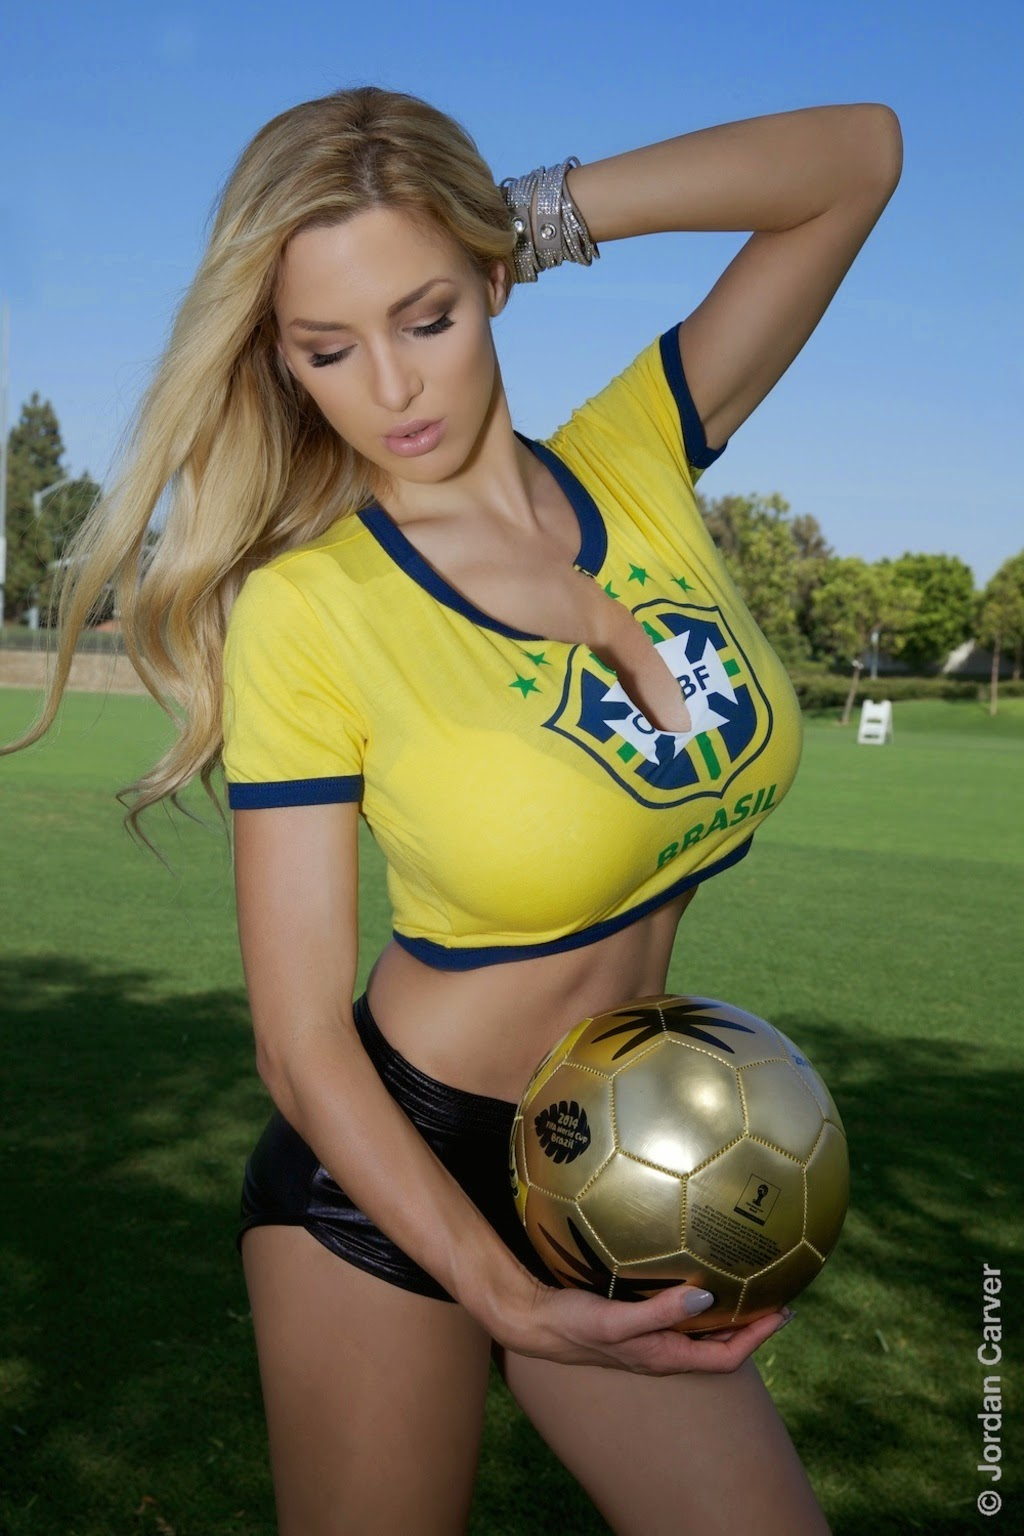 Jordan Carver Big Boobs Playing Foot Ball In Brasil Fan -6552